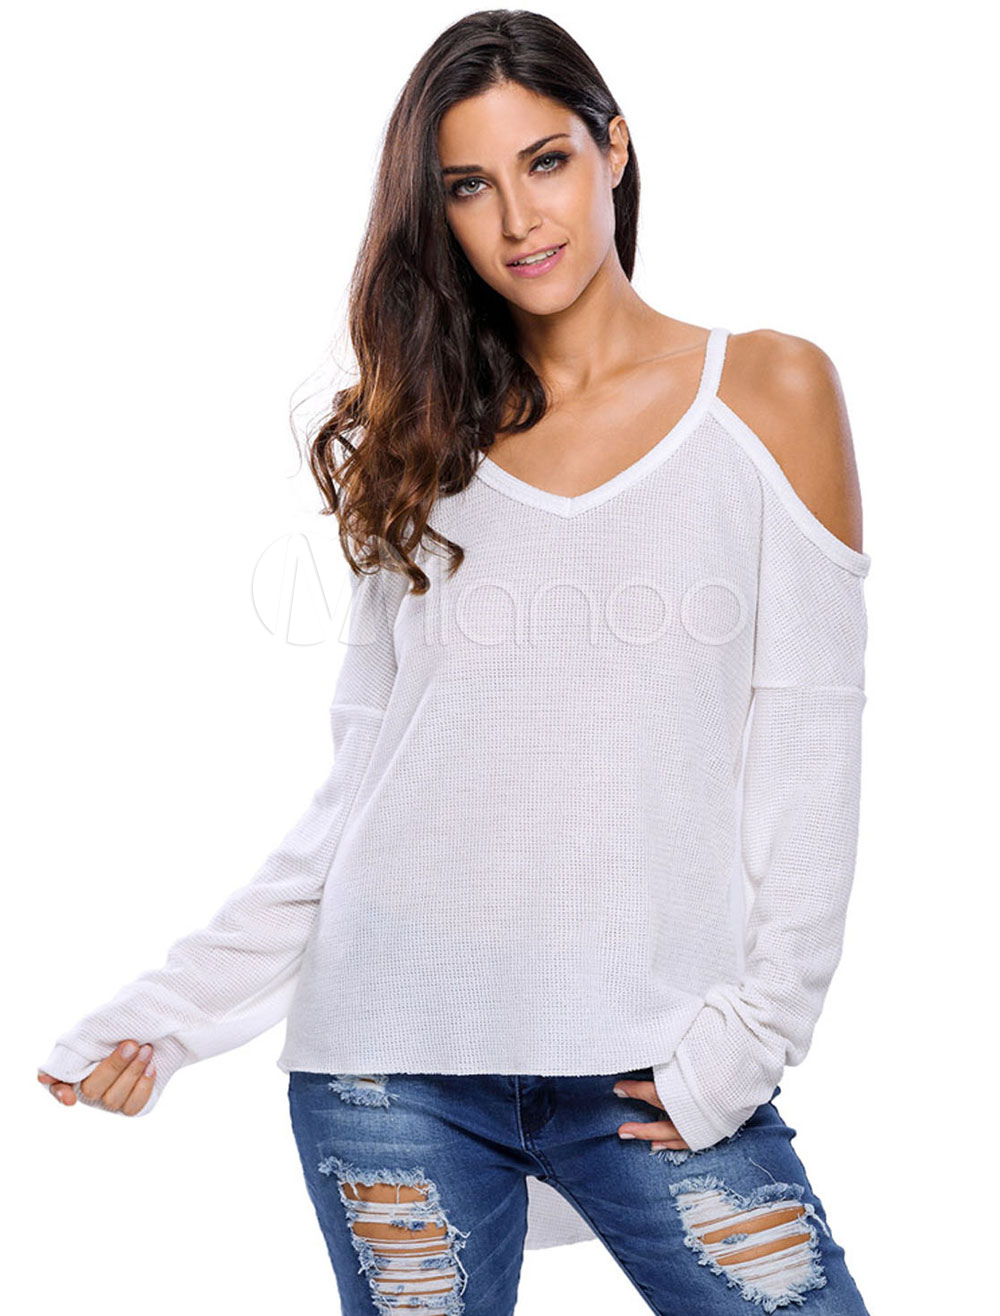 Long Sleeve T-shirt White Women's Cold Shoulder U-neck High Low Casual Top Cheap clothes, free shipping worldwide